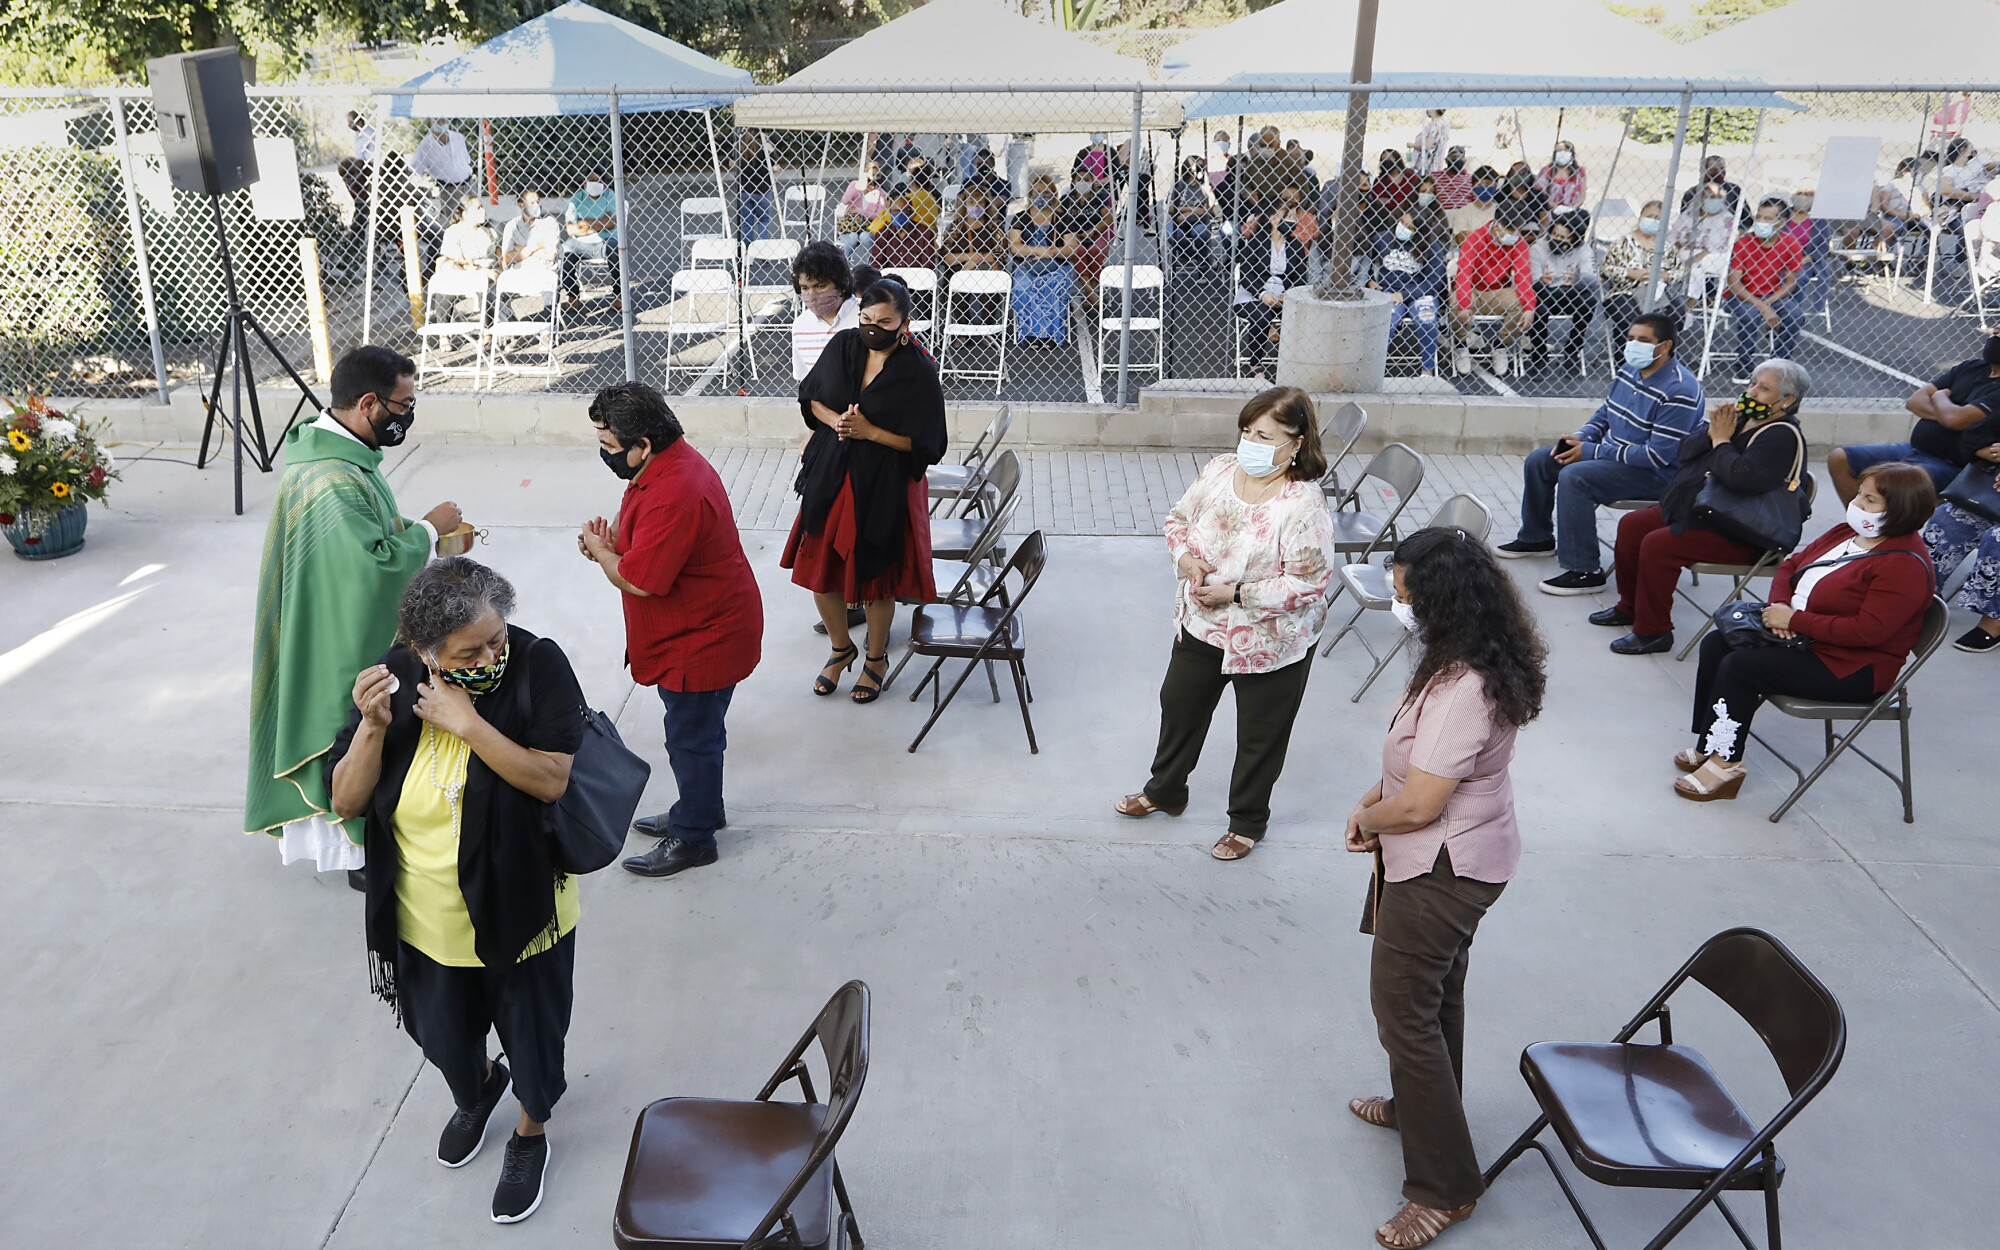 The Rev. Edmundo Zárate distributes communion at San Diego's St. Jude Shrine of the West.